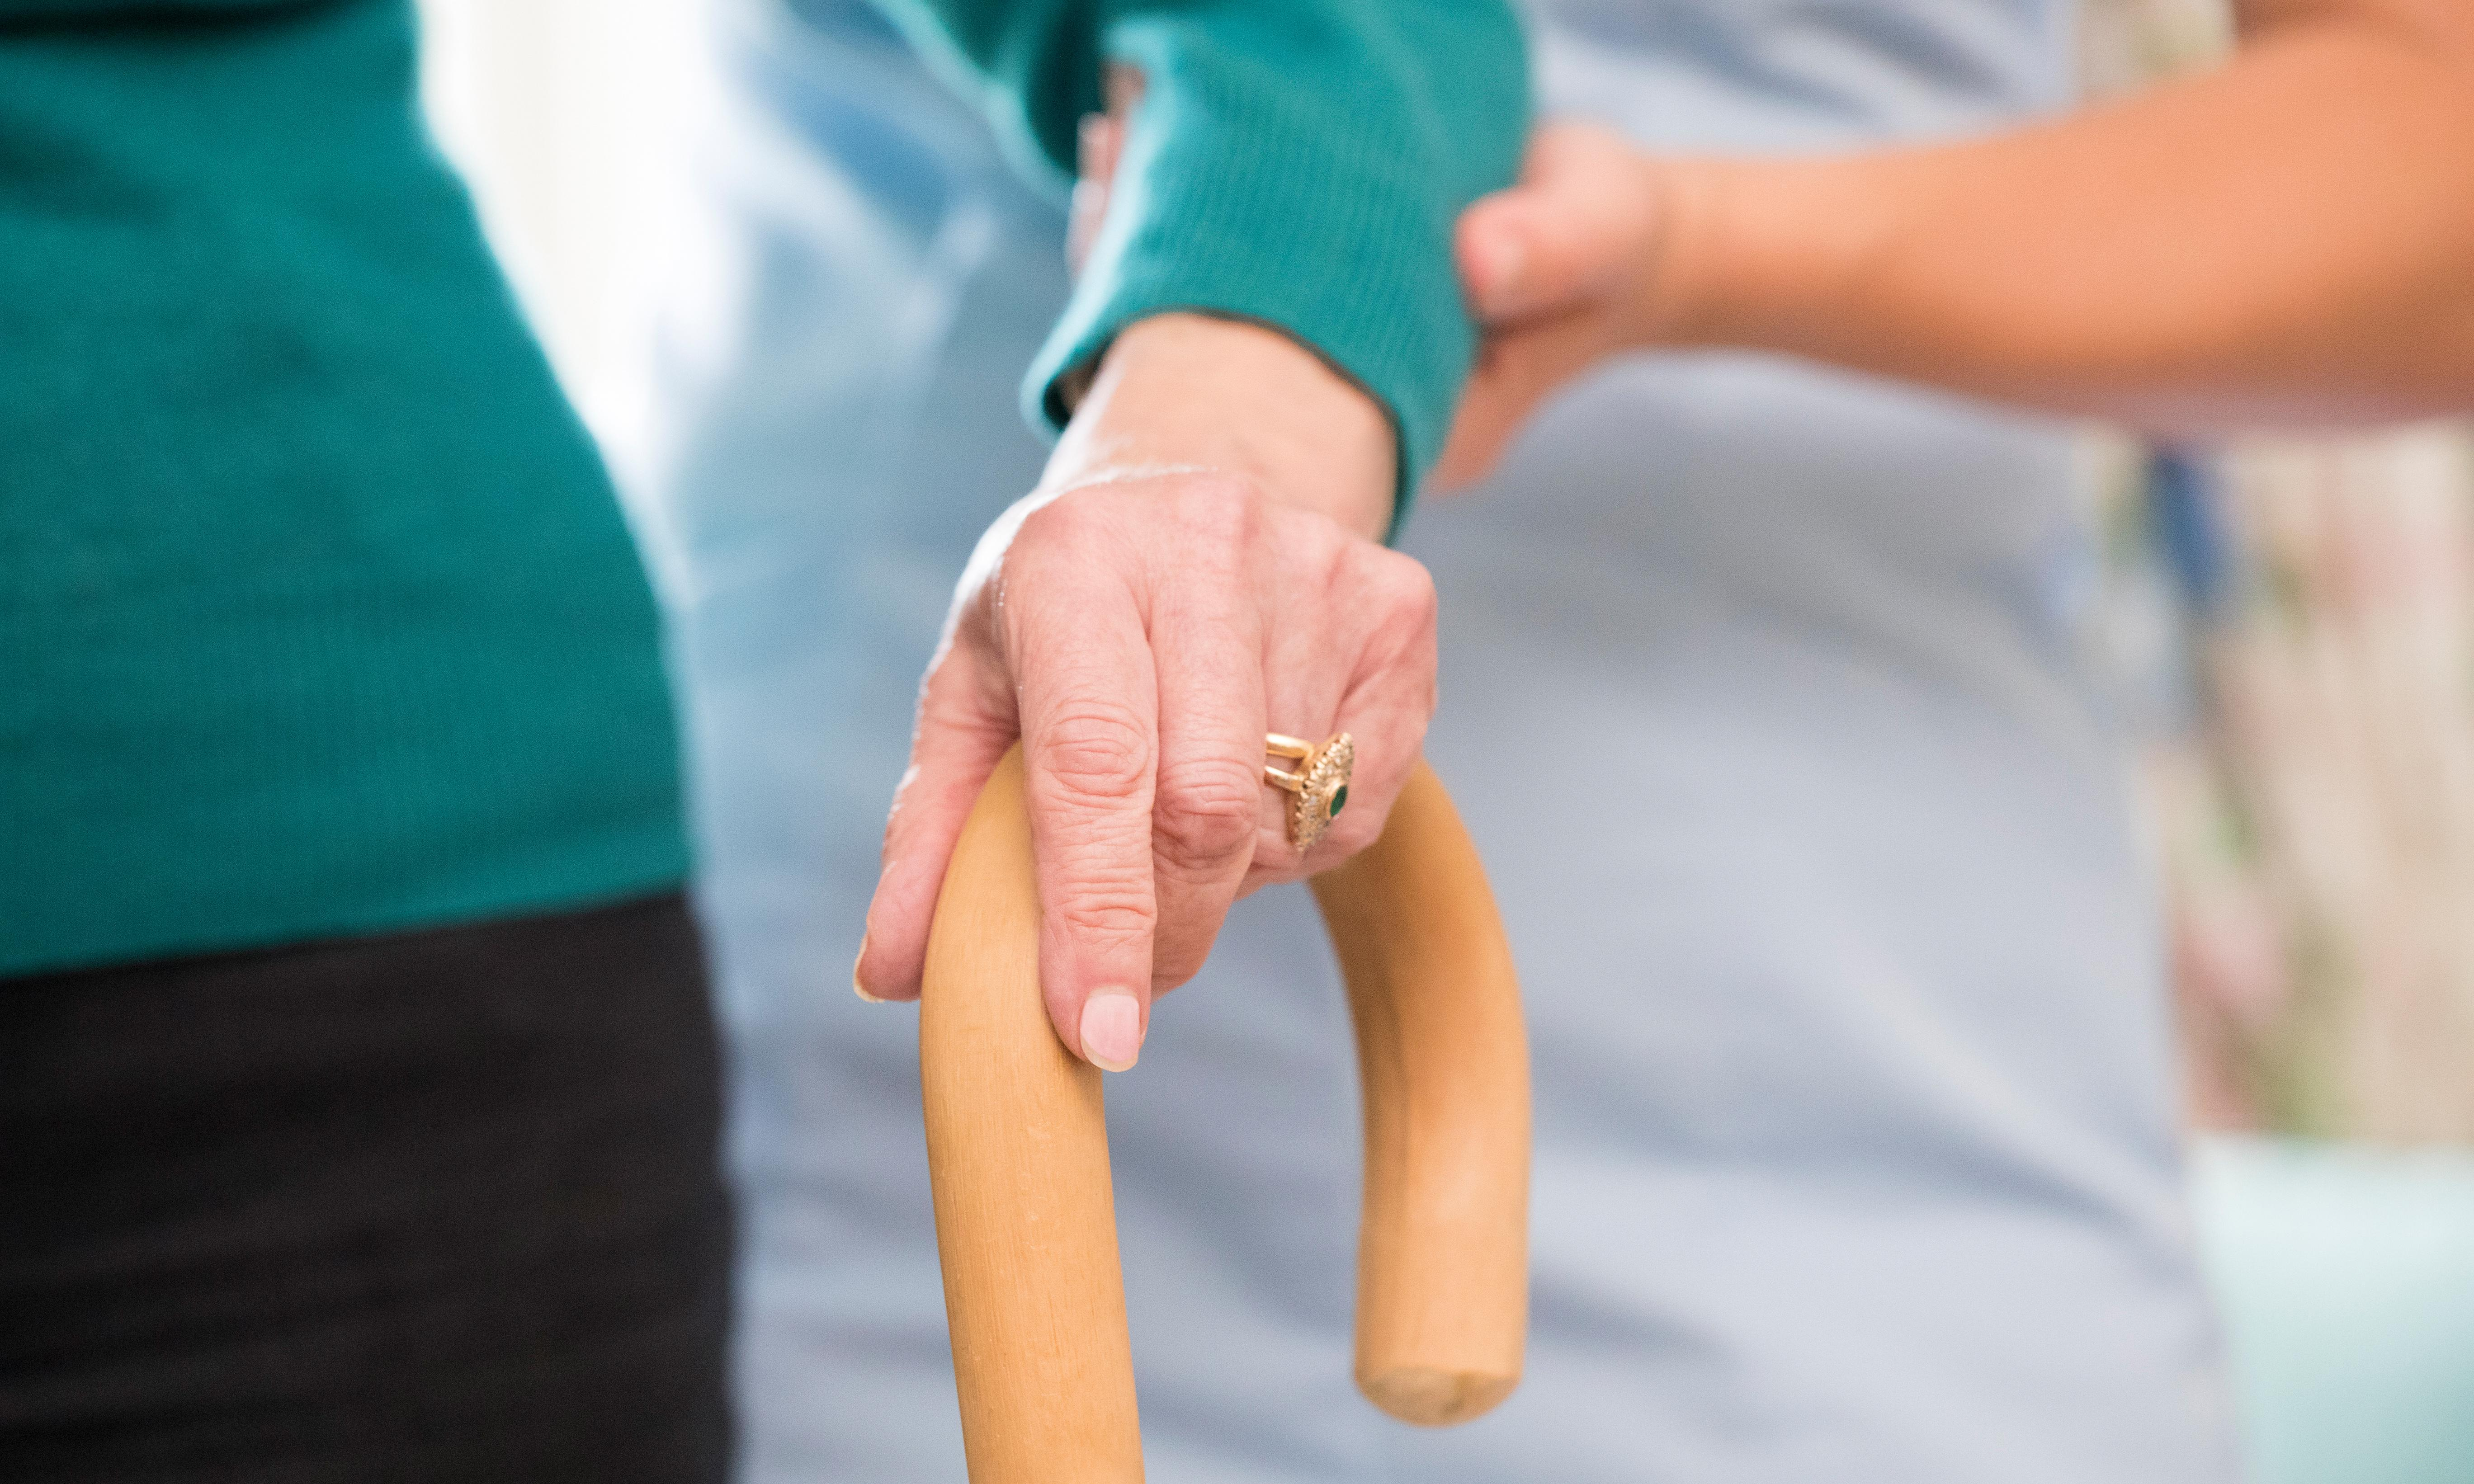 Some Australians would rather die than live in a nursing home, royal commission hears